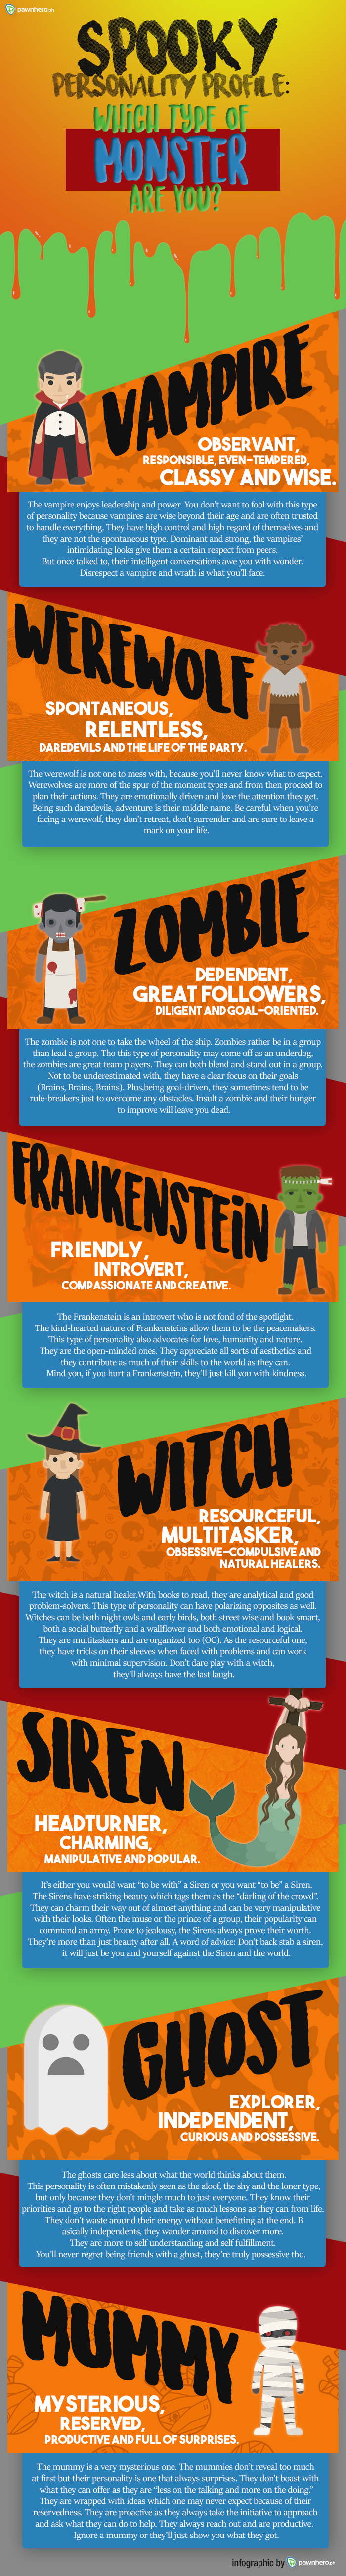 SPOOKY-PERSONALITY-HALLOWEEN_INFOGRAPHIC